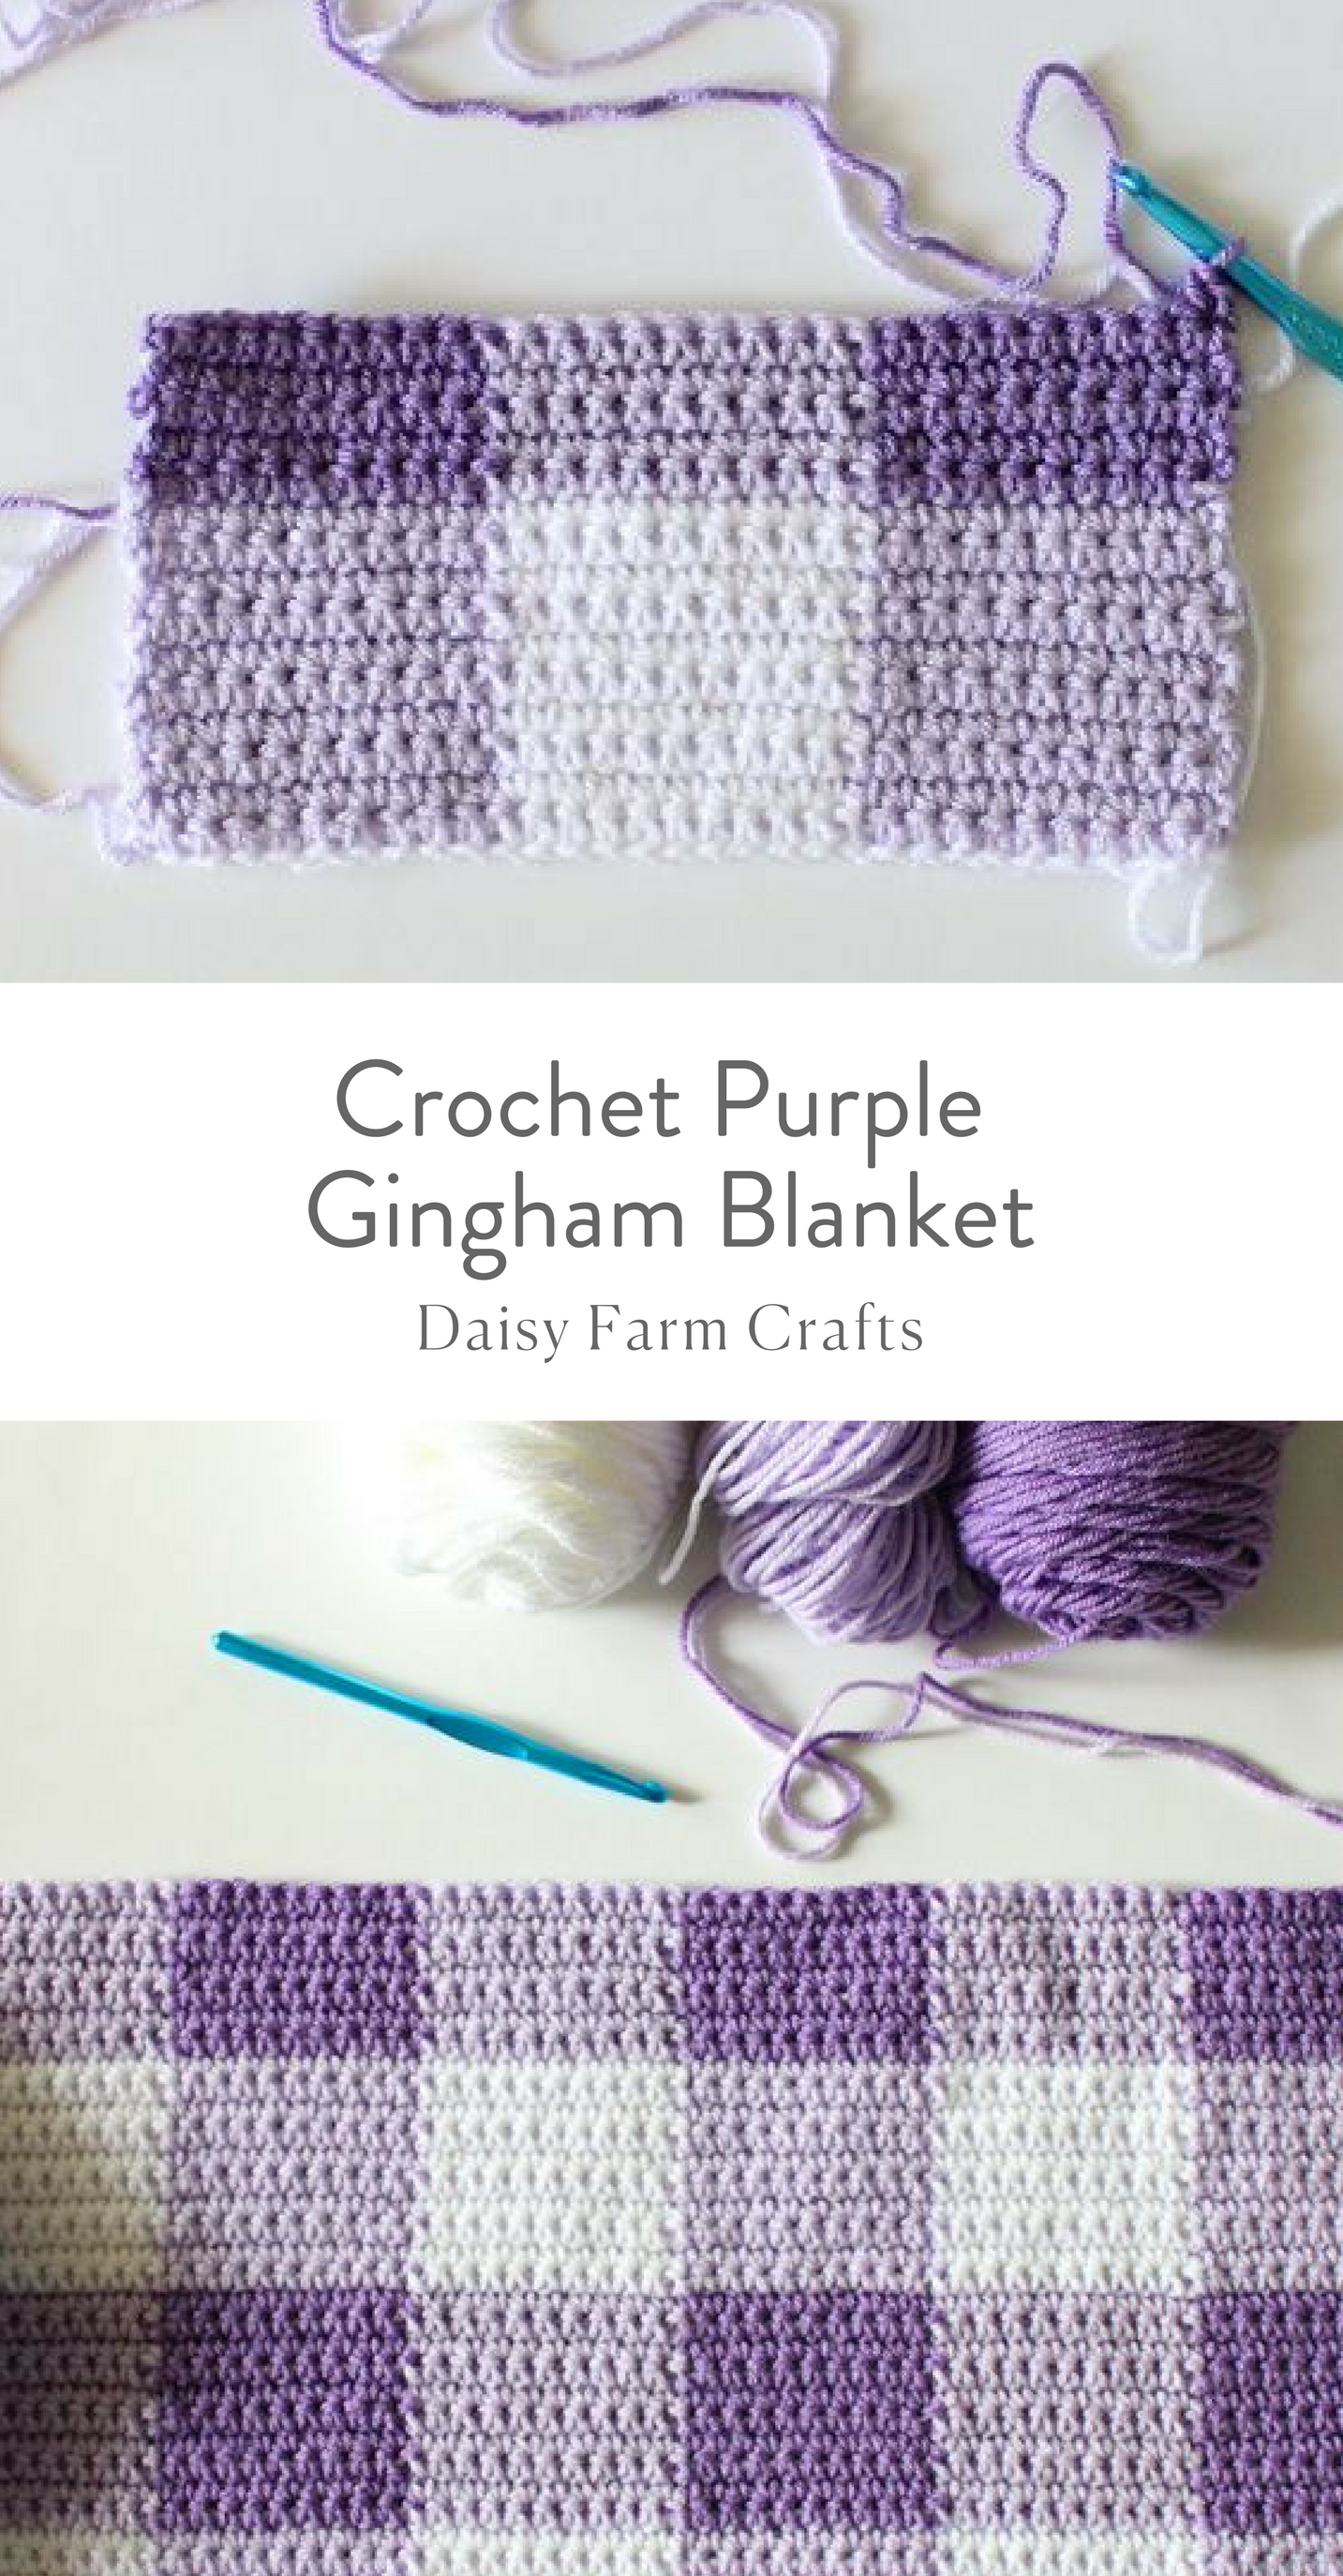 Free Pattern - Crochet Purple Gingham Blanket | CROCHET en 2018 ...